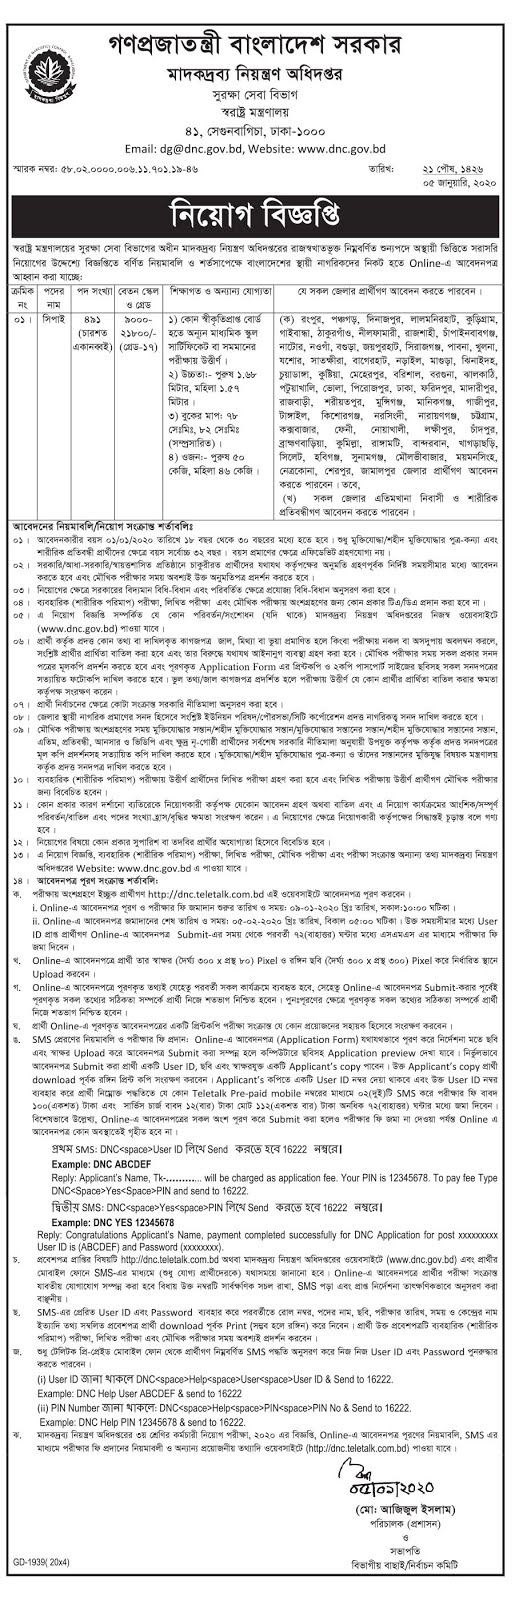 Department Of Narcotics Control (DNC) Job Circular 2020